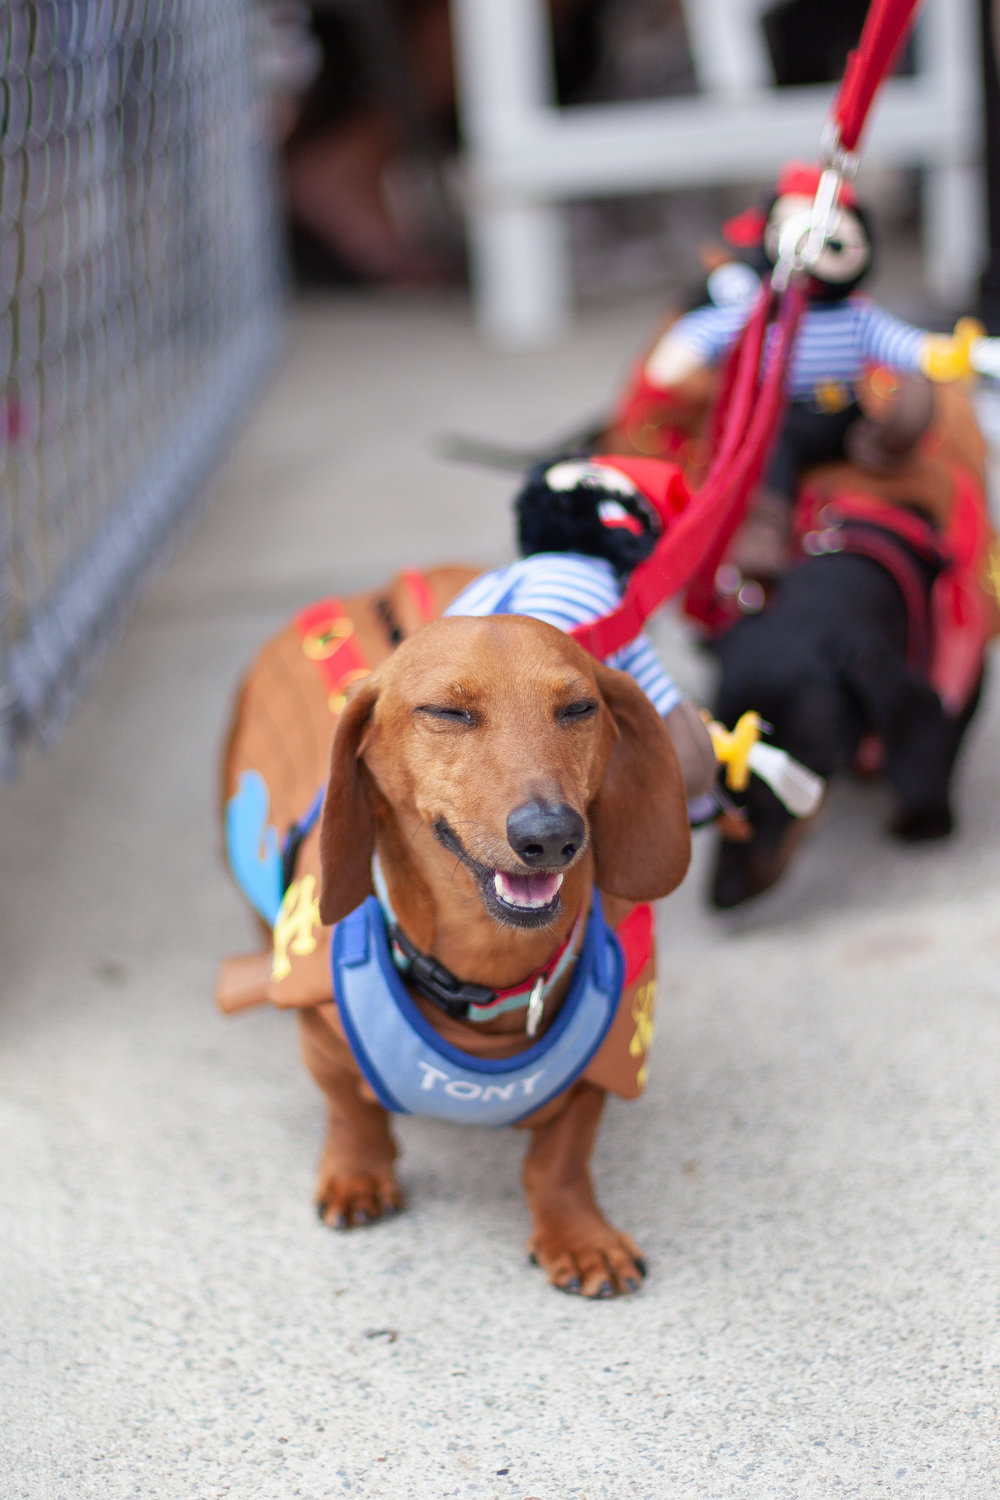 Tony, the pirate dachshund - Photo by Chloe Jordan Design